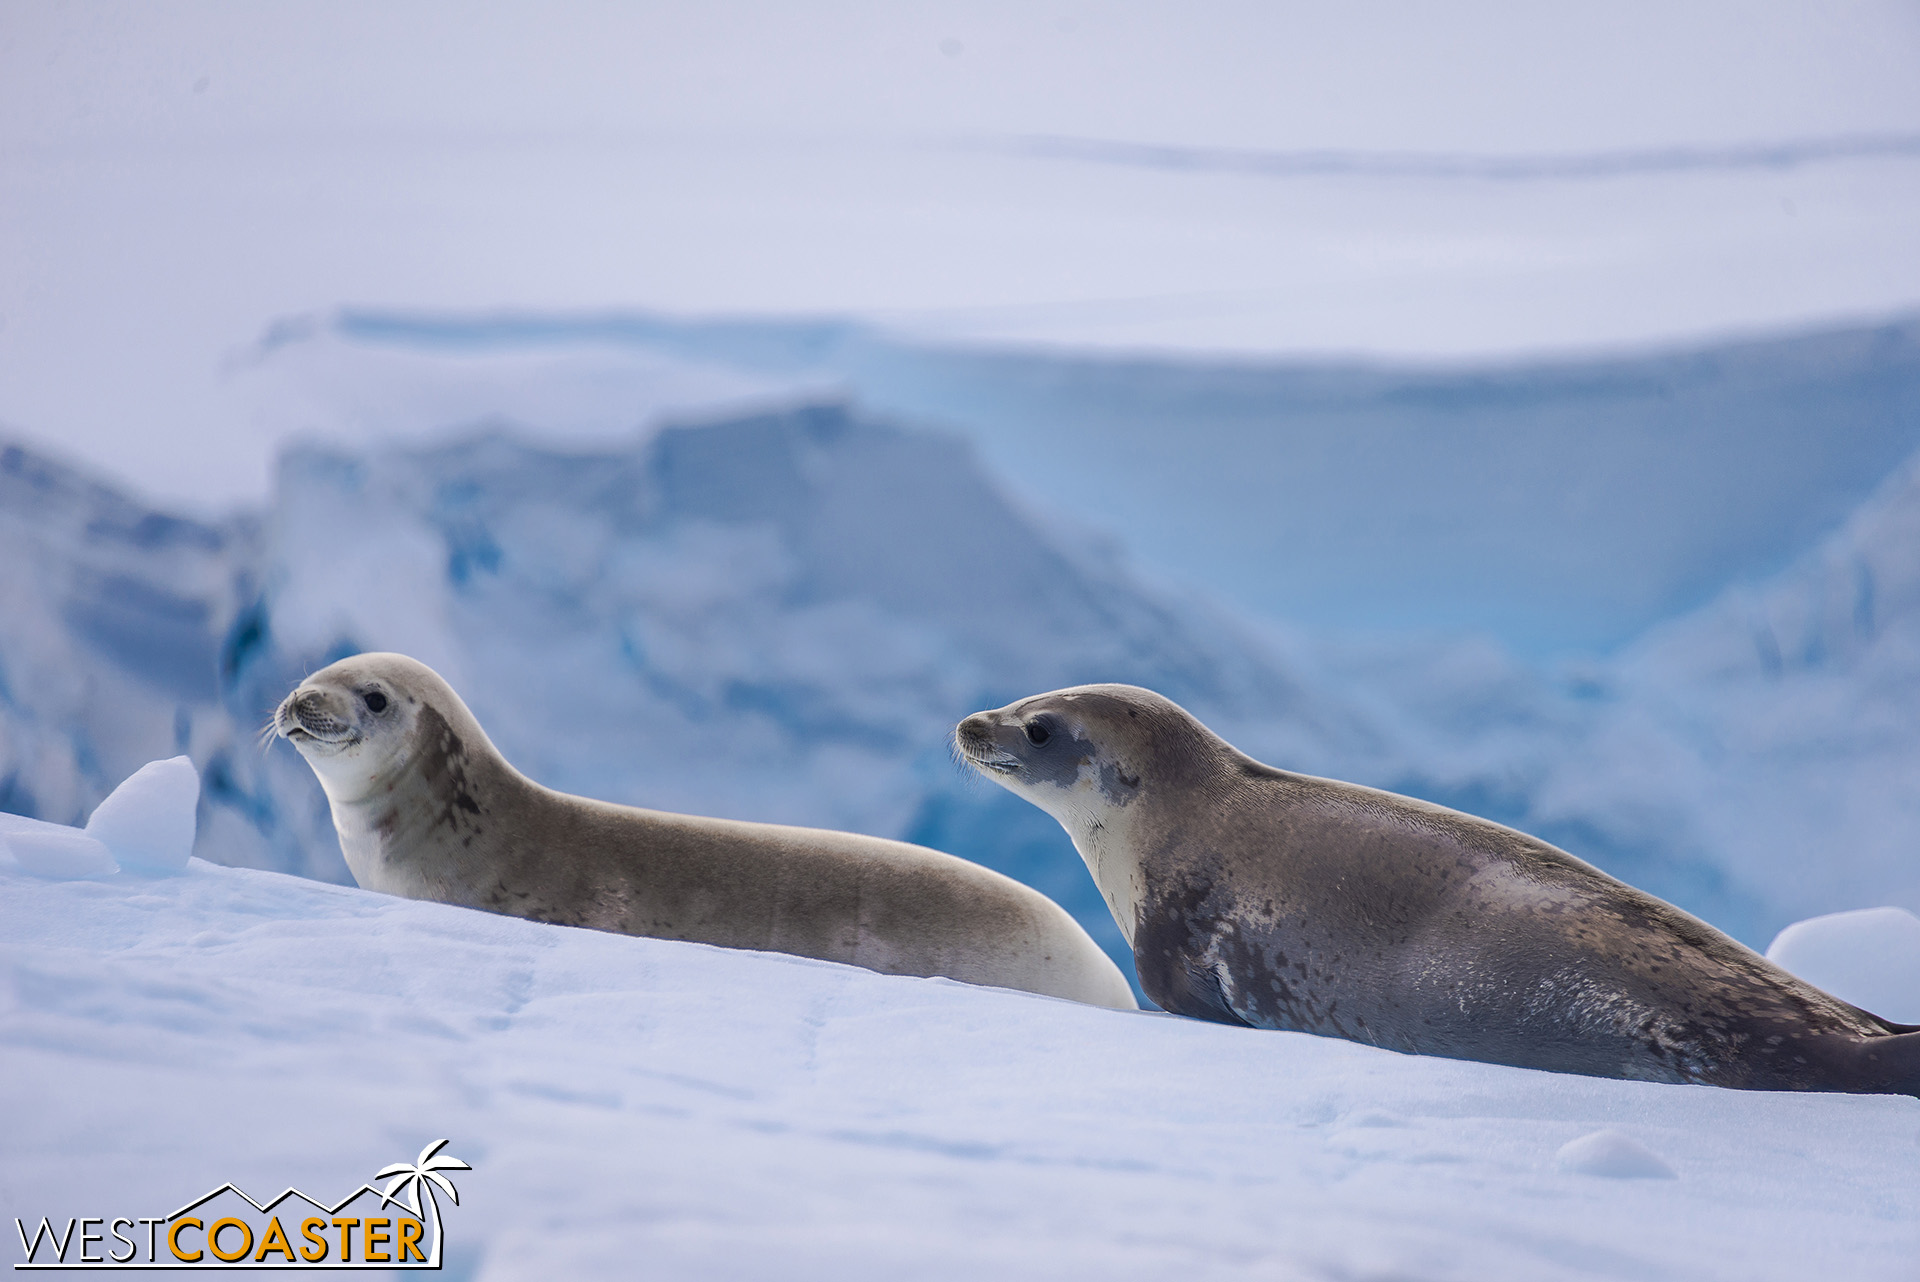 A couple of seals, resting on the ice.